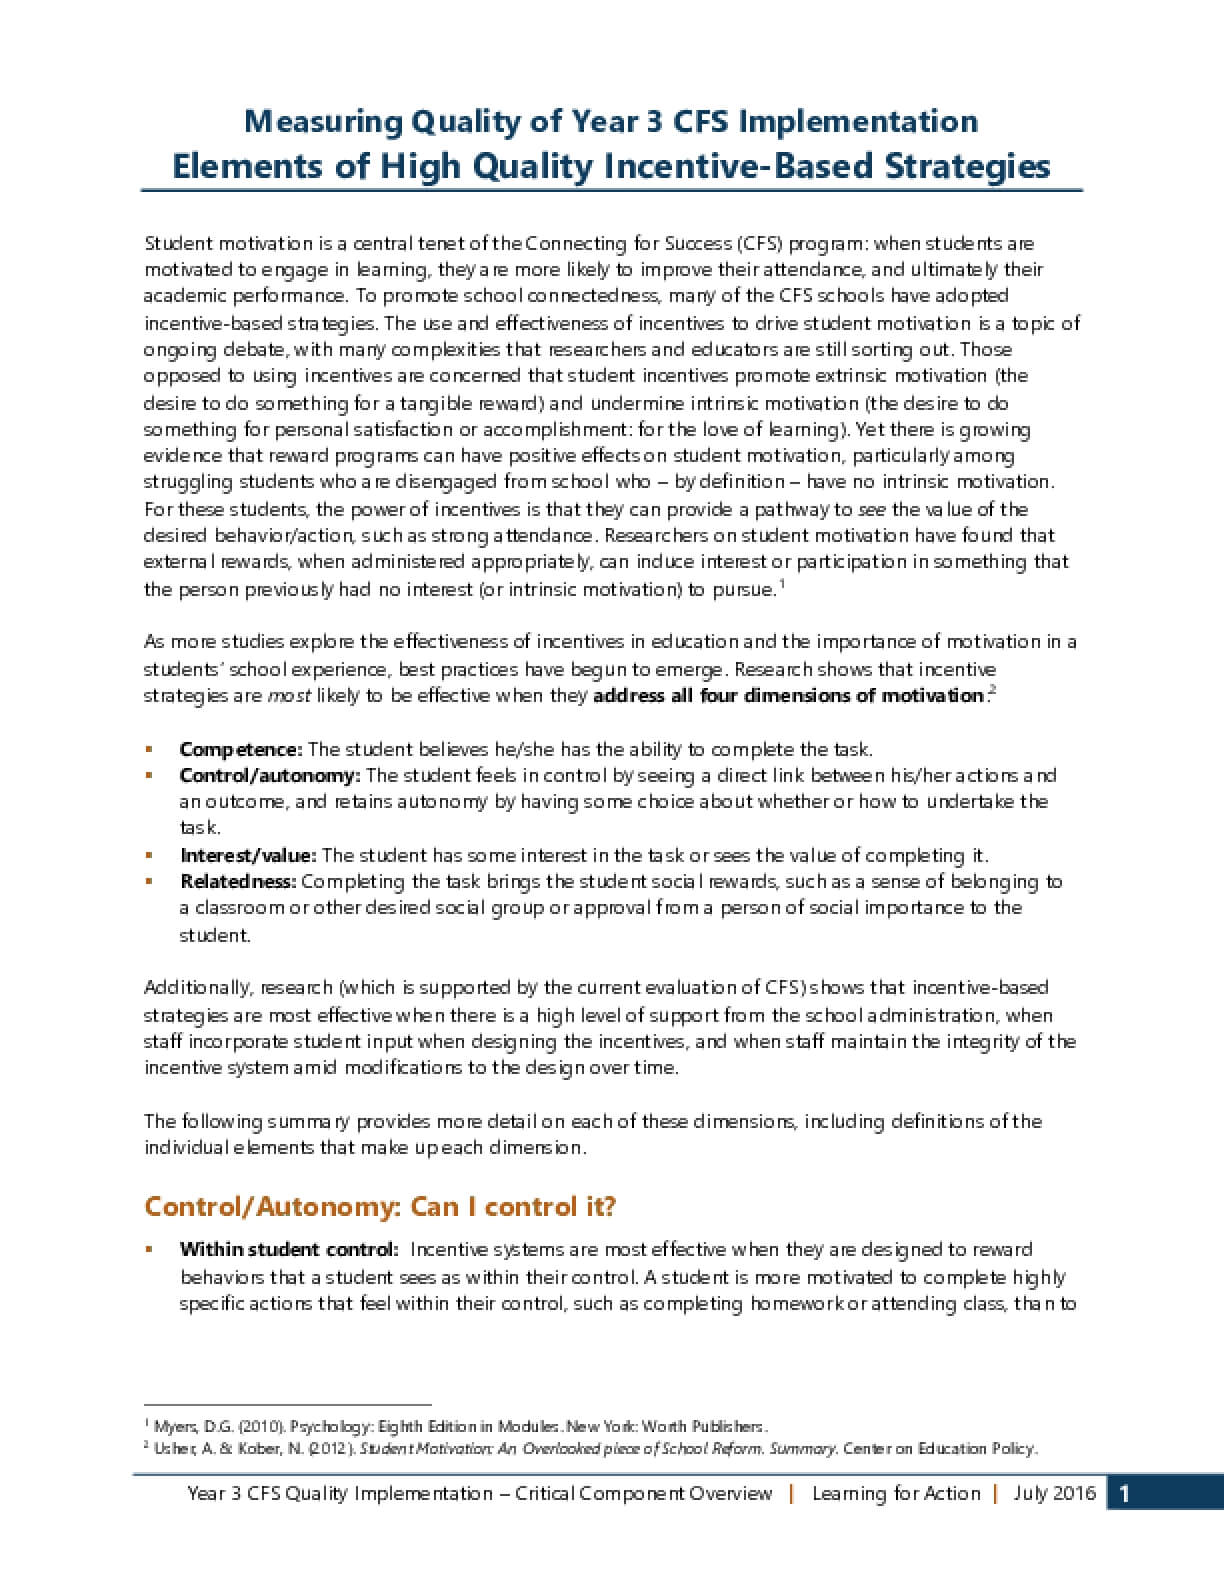 Elements of High-Quality Students Incentive Strategies